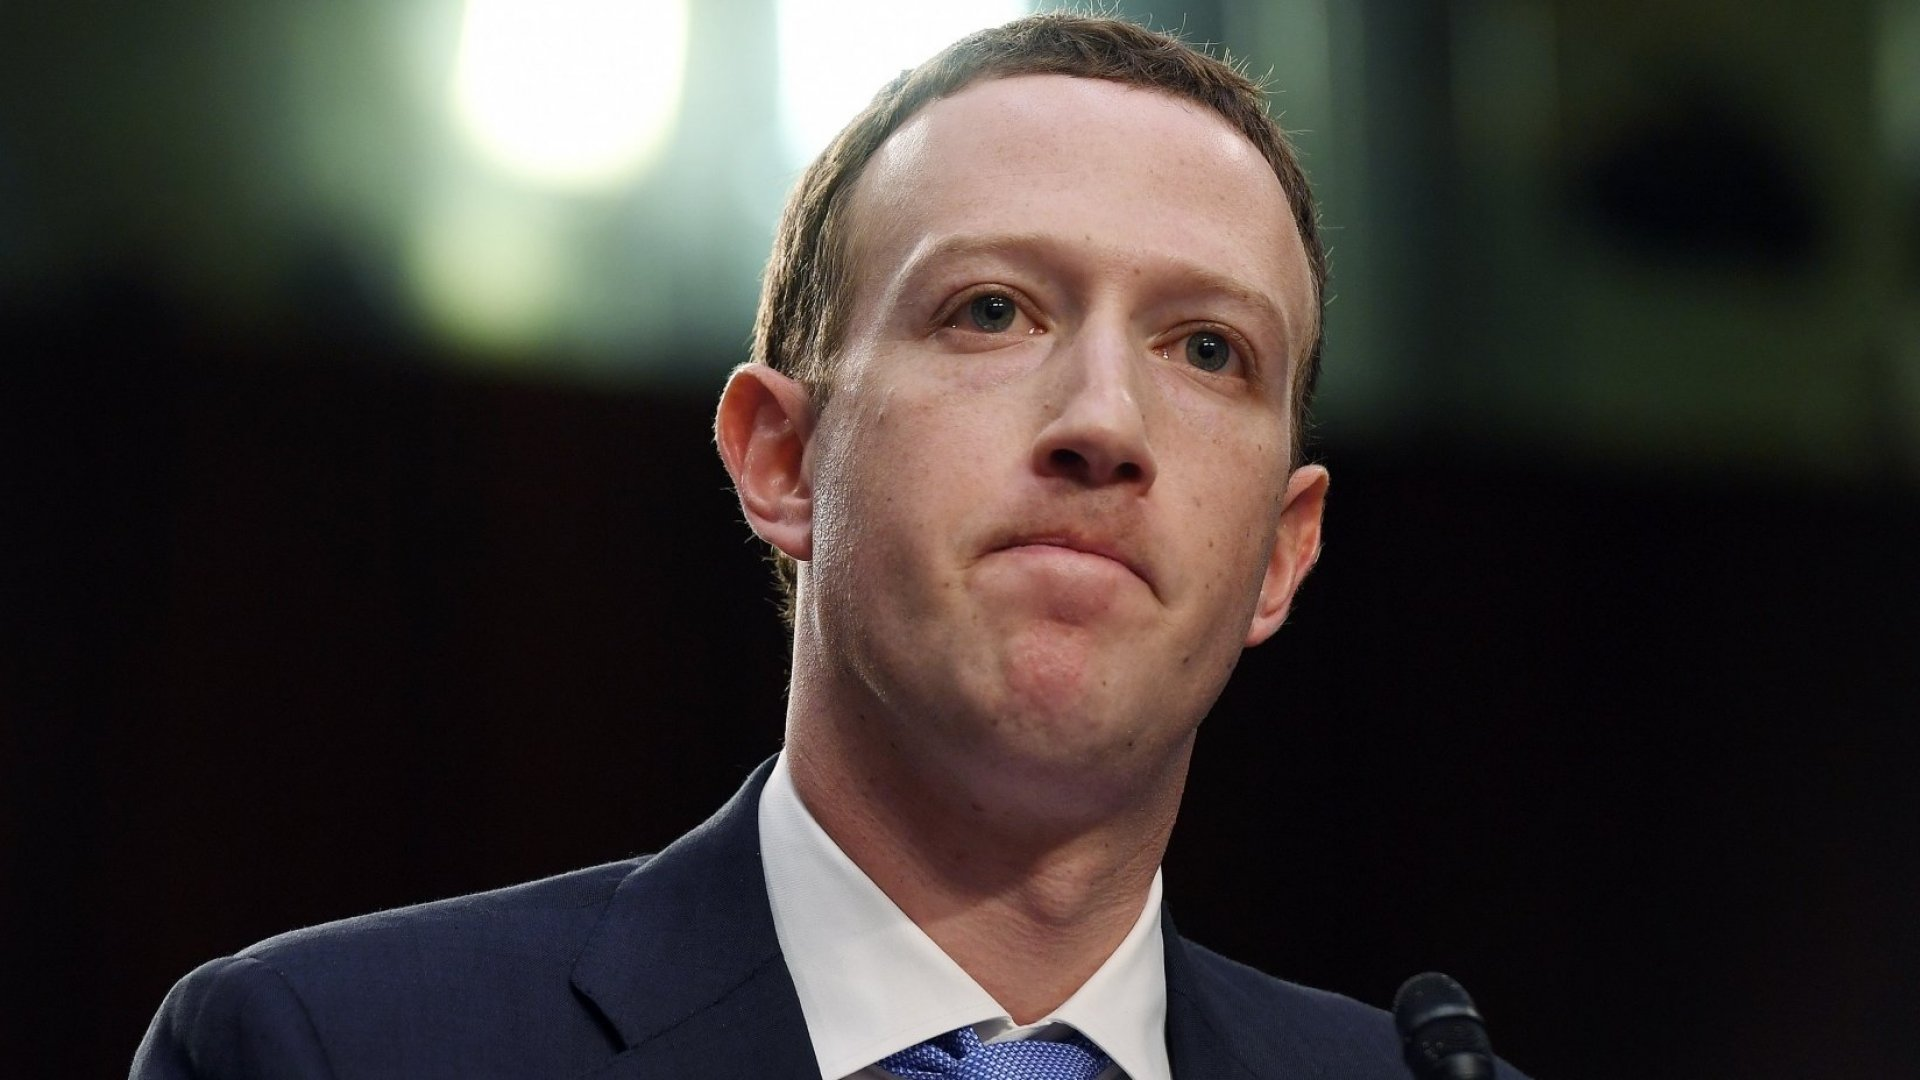 Mark Zuckerberg means well, and that's the problem.